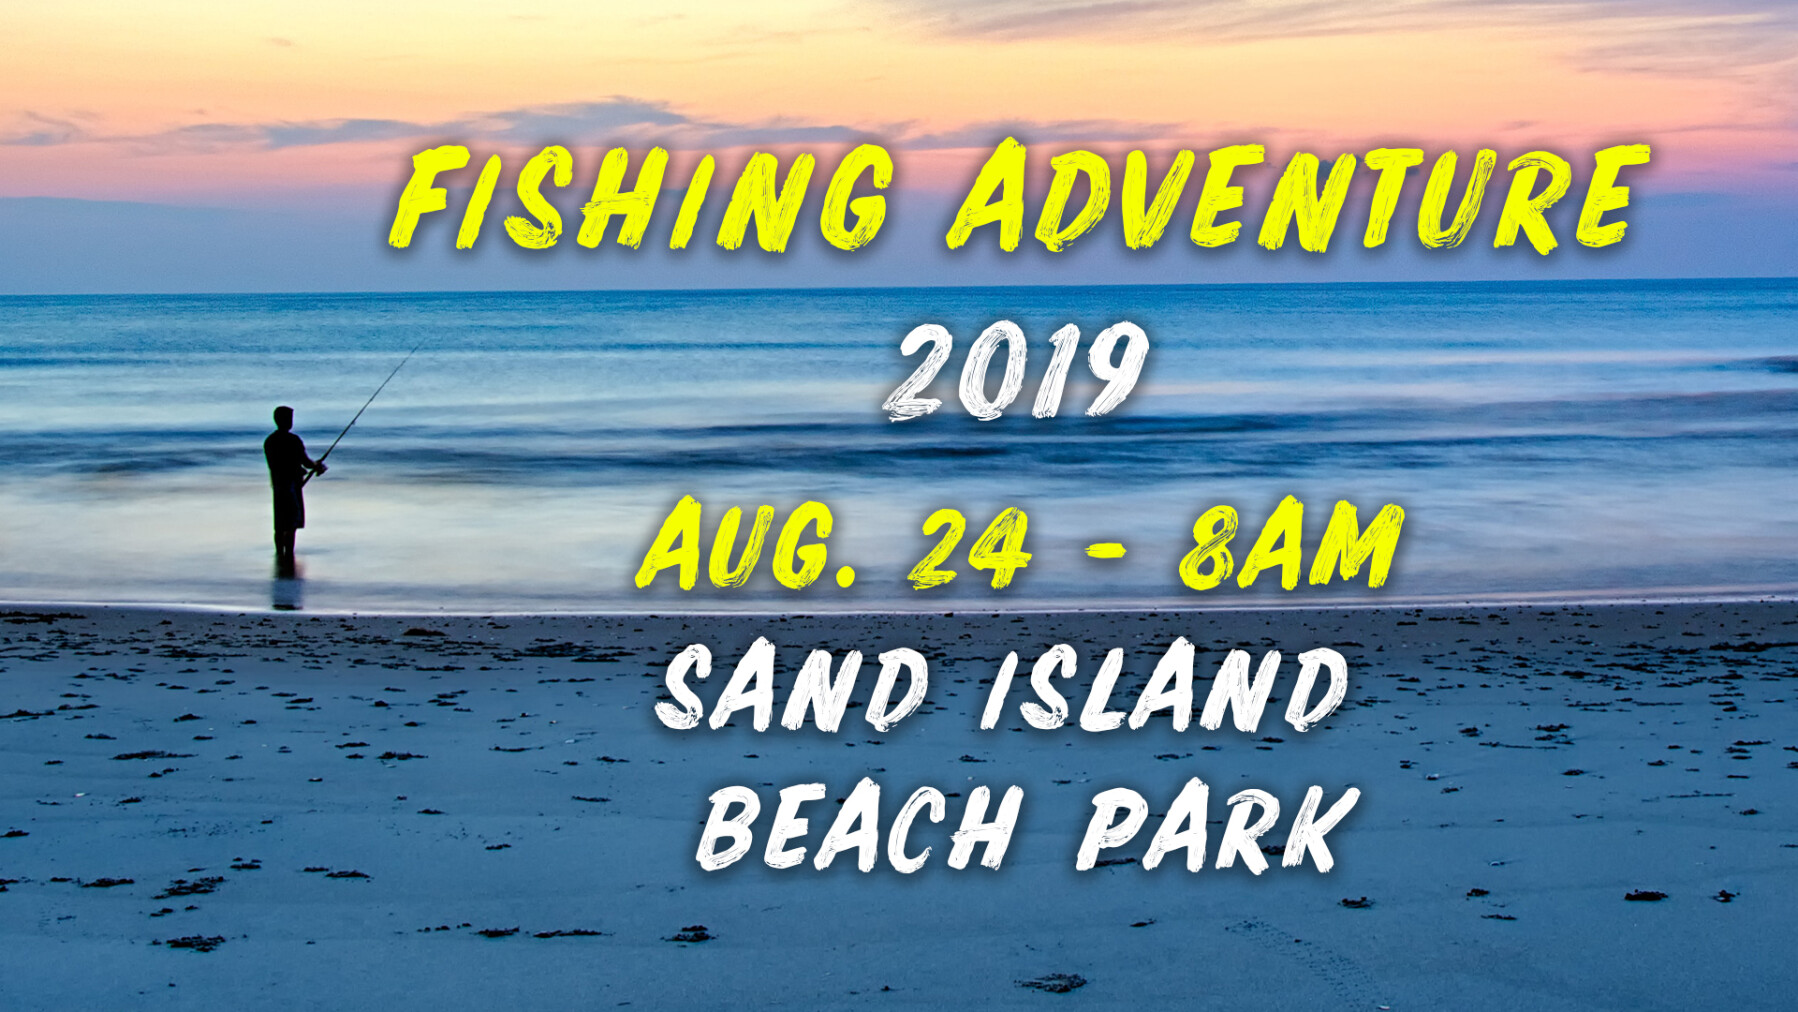 Fishing Adventures 2019